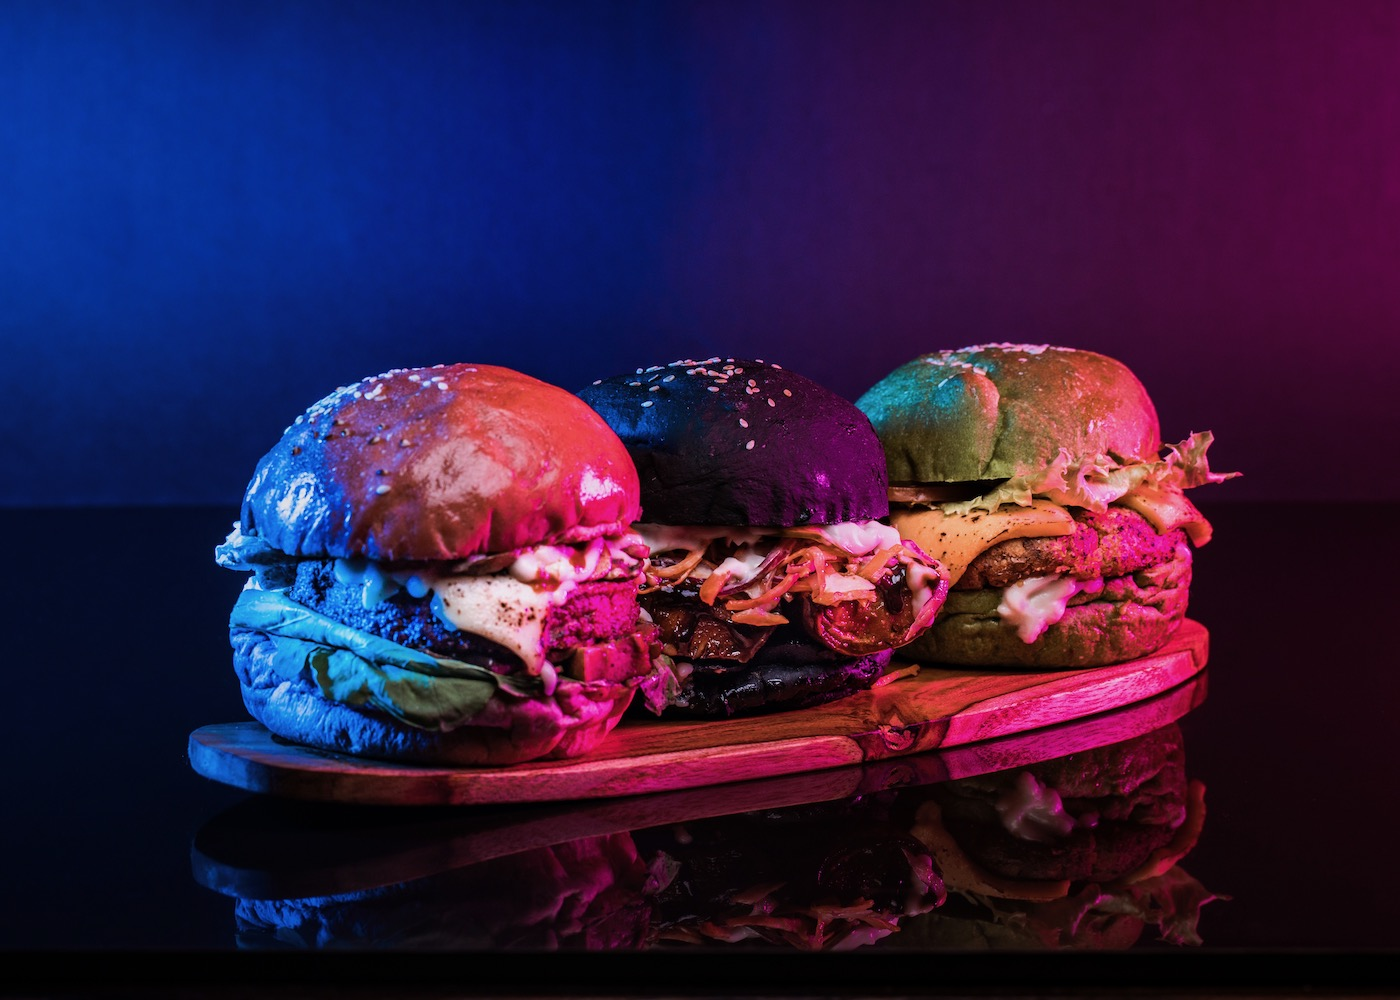 The 15 best burgers in Bali – get your fast food fix at these drool-inducing restaurants